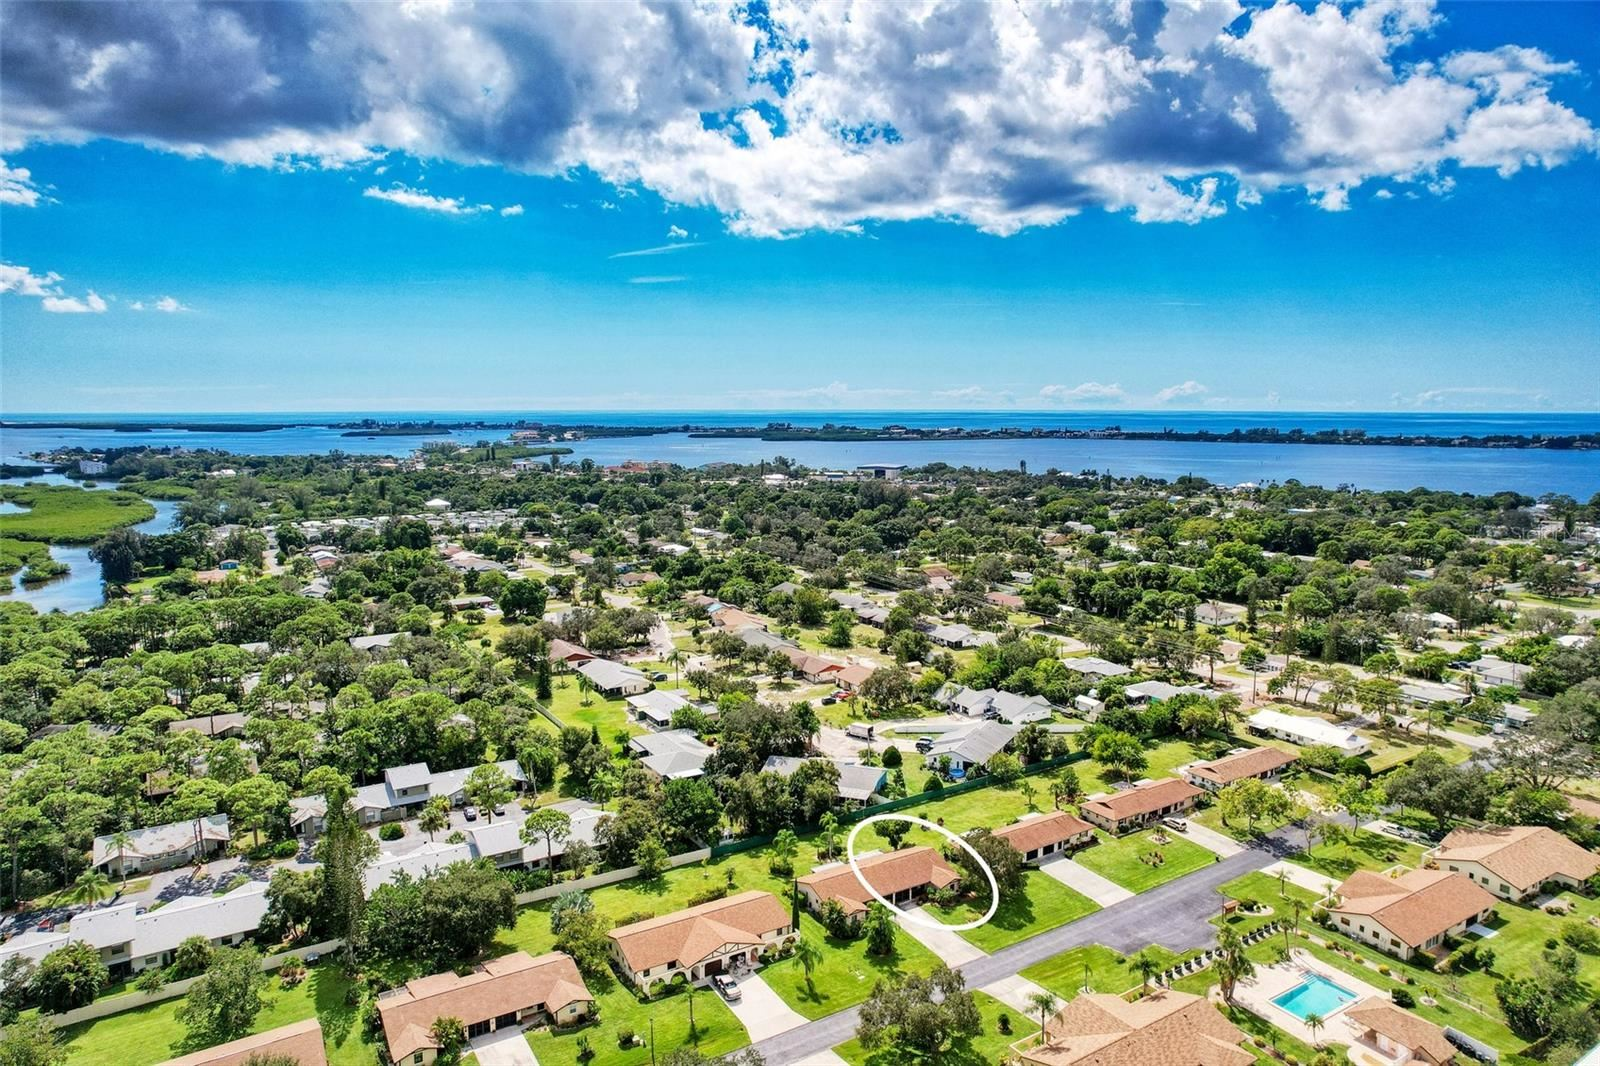 Photo of 209 HIGH POINT DRIVE #209-A, ENGLEWOOD, FL 34223 (MLS # C7450244)